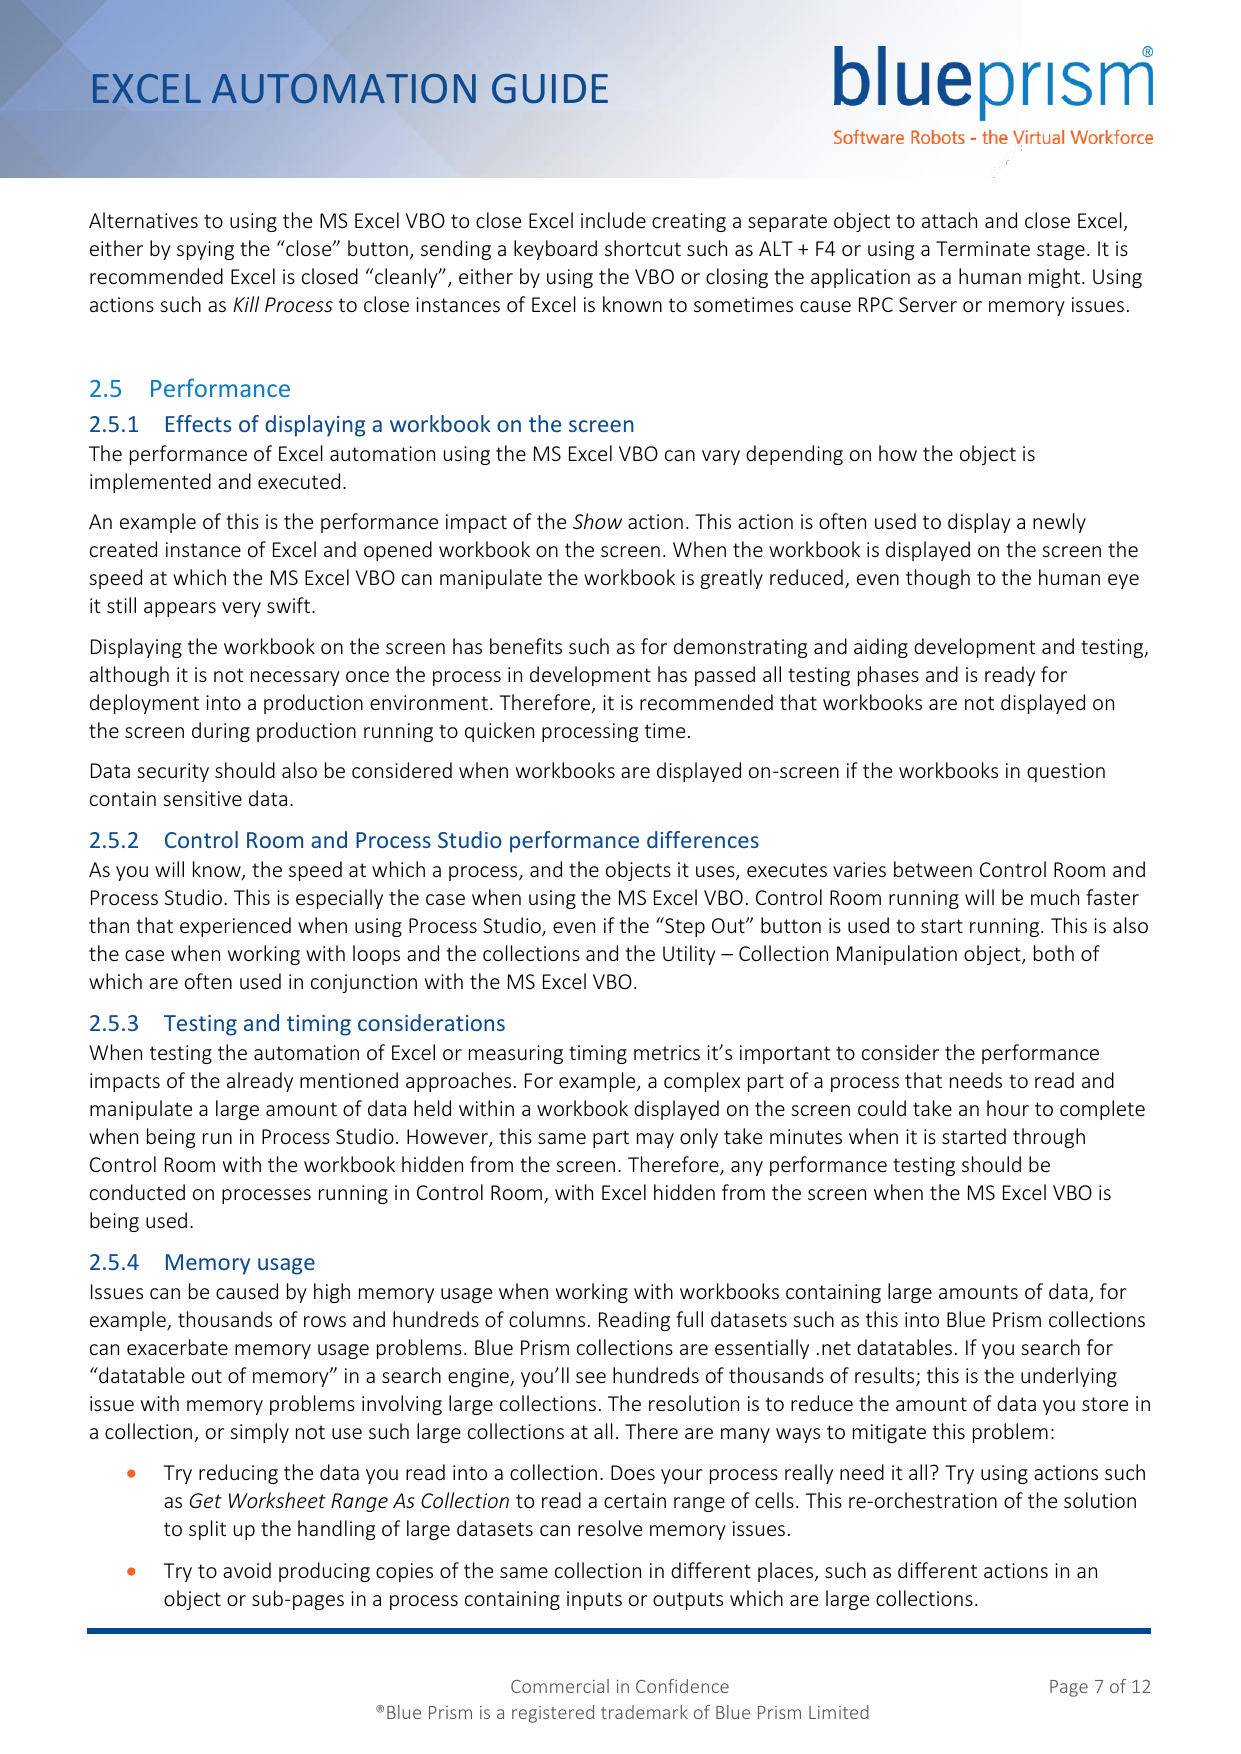 Page 7 of 12 - Blue Prism Excel Automation Guide